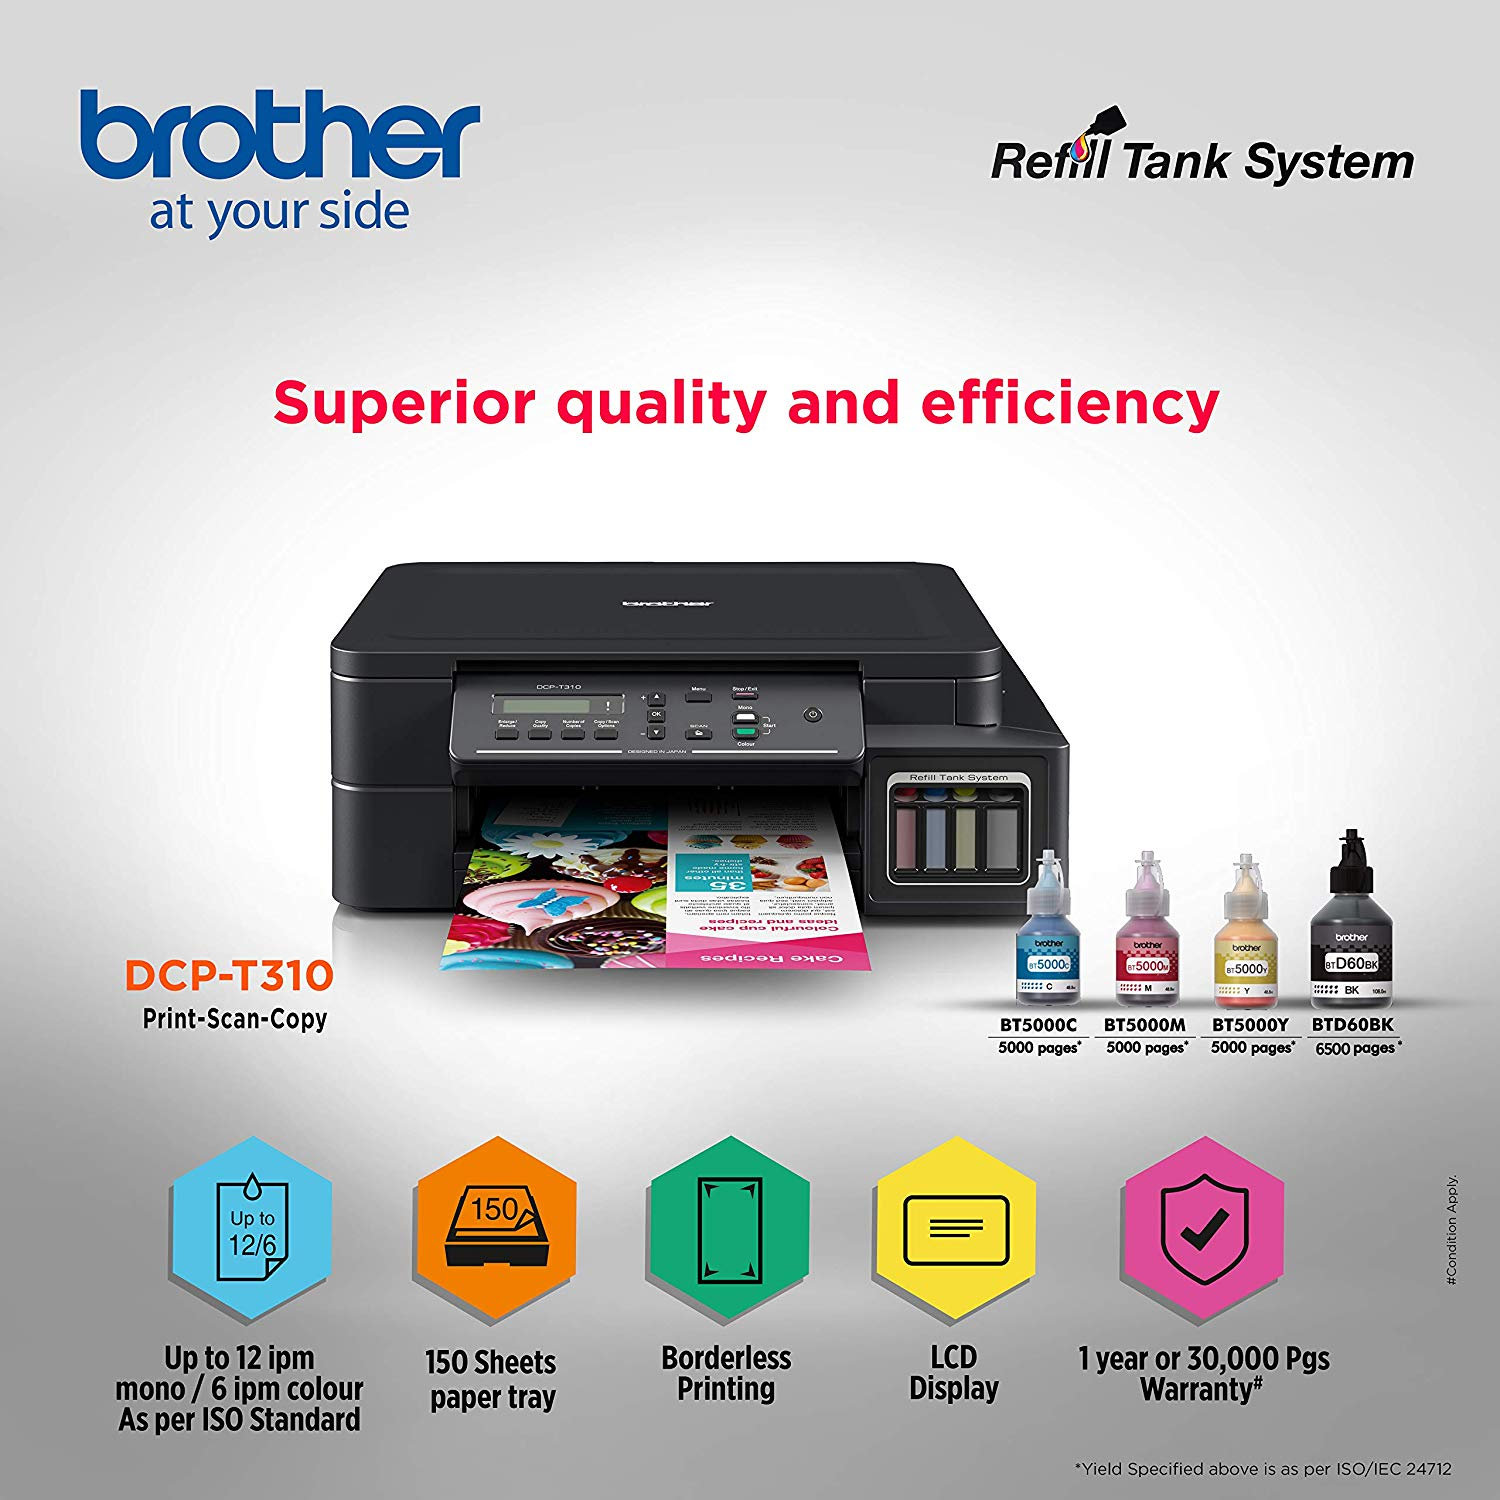 Brother DCP-T310 Inktank Refill System Printer